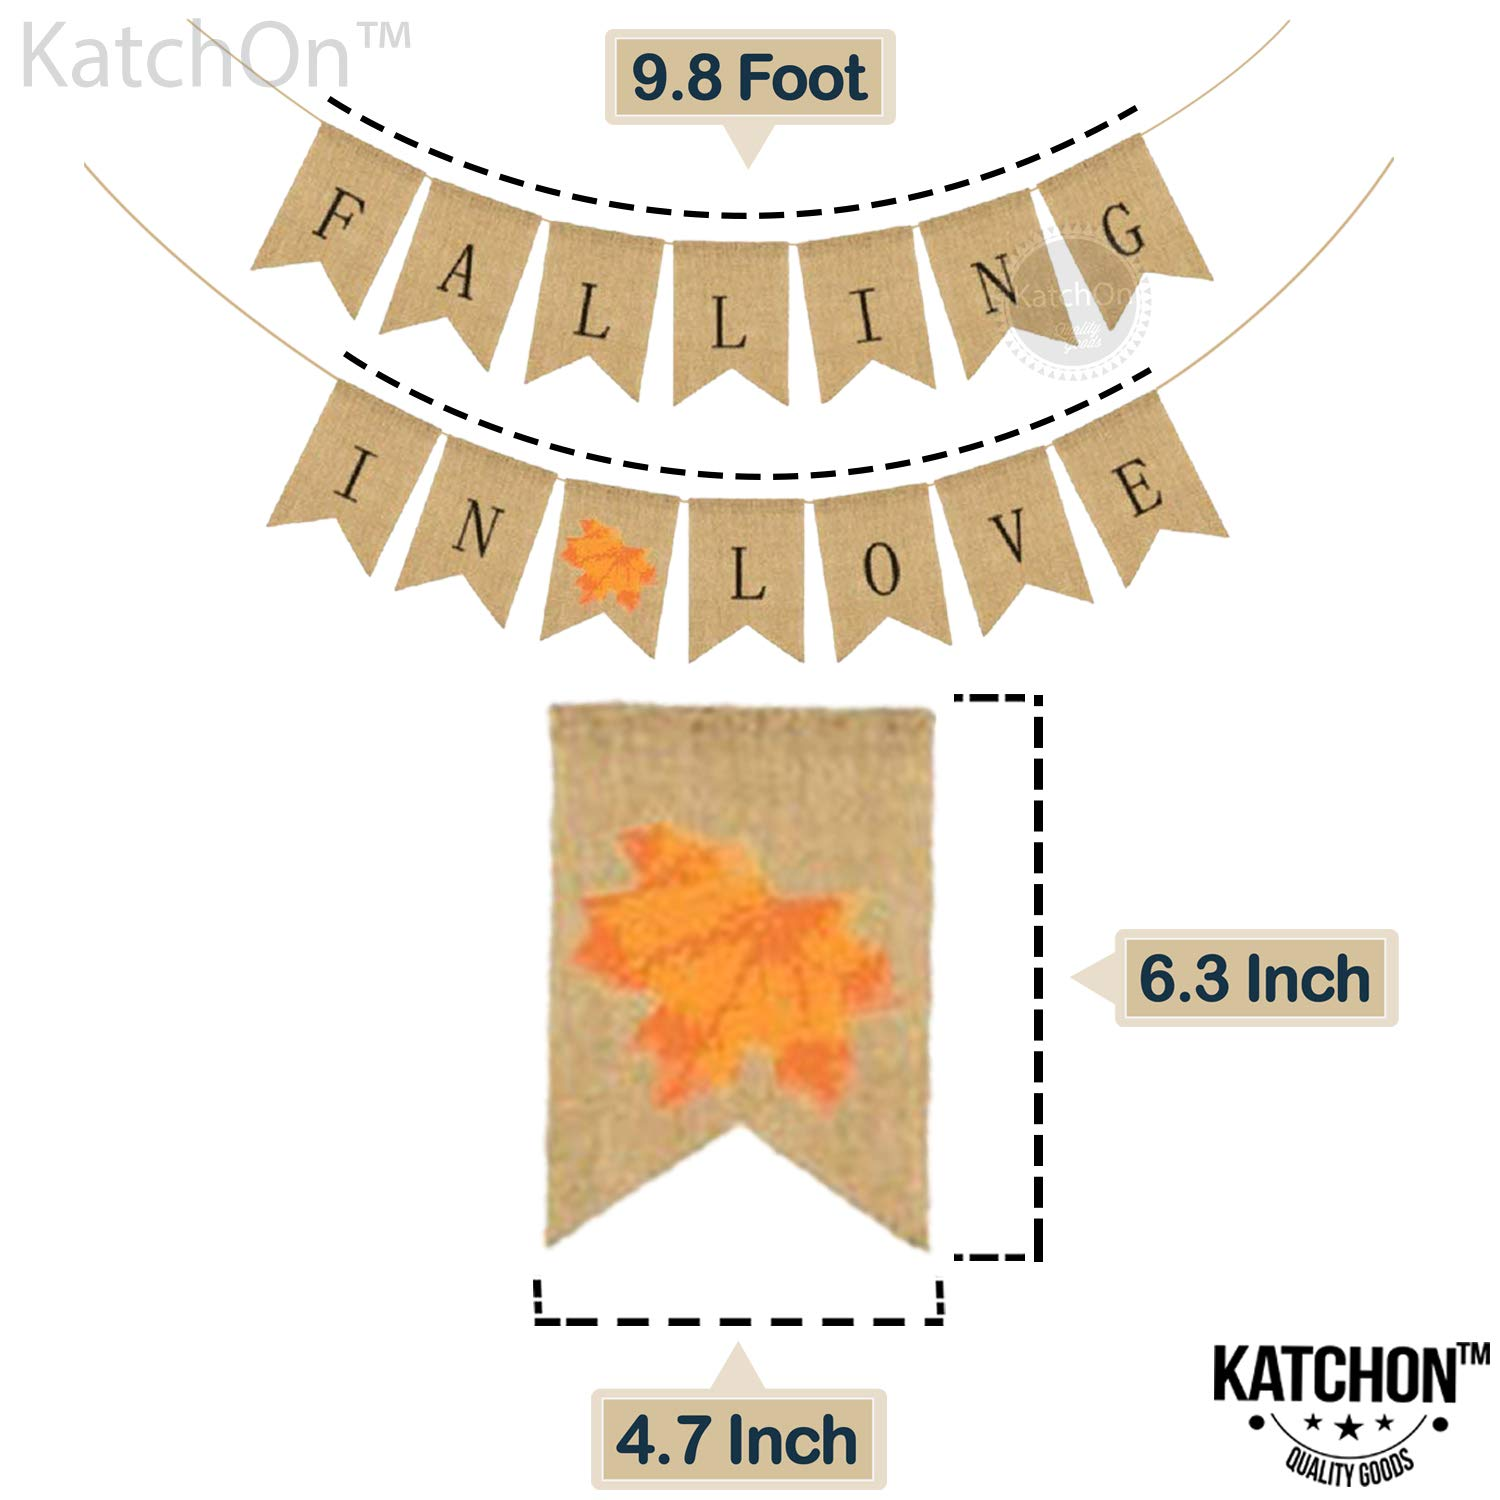 Thanksgiving Day Decorations Anniversary Valentines No DIY Required Great for Bridal Baby Shower Maple Leaf Vintage Retro Style Home Office Decor Accessories Falling In Love Burlap Banner